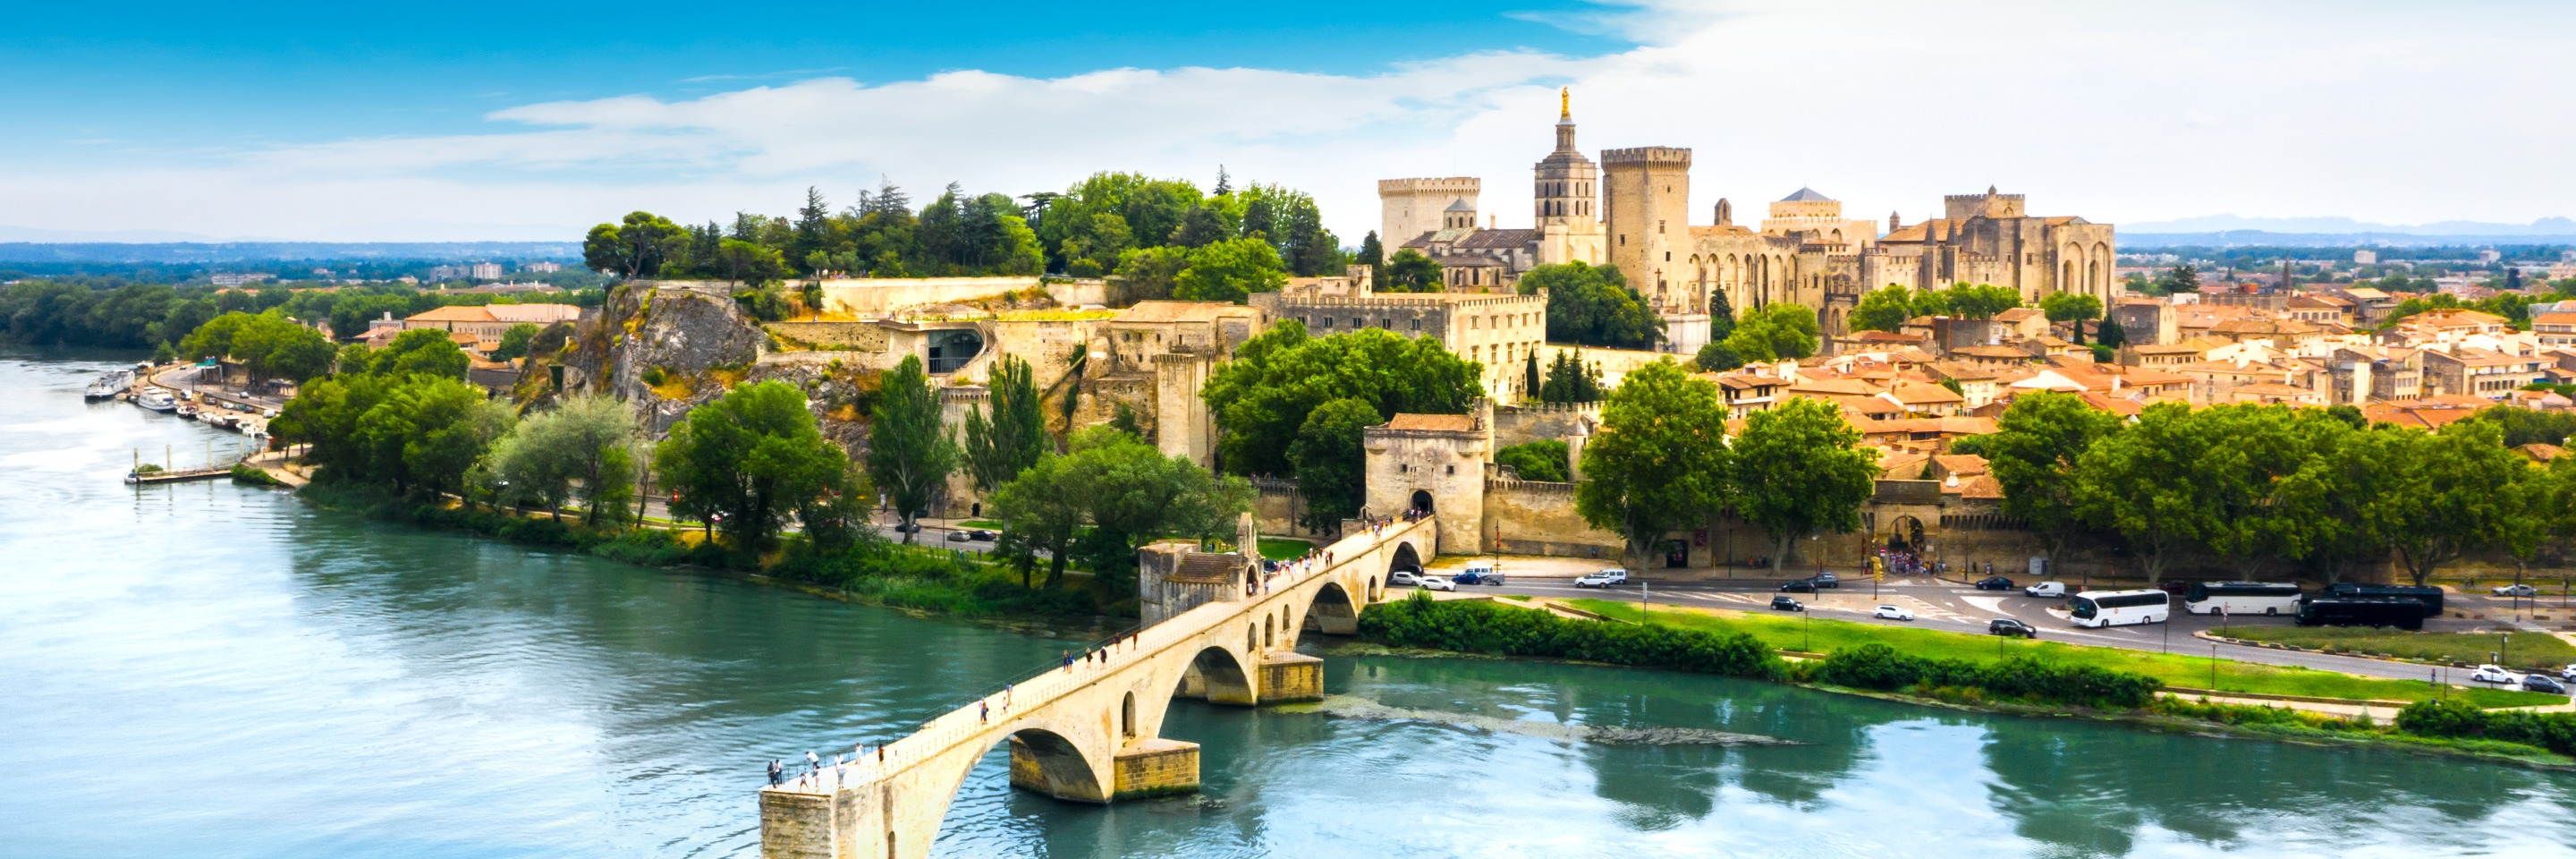 Burgundy & Provence with 2 Nights in Nice, 2 Nights in Paris, 3 Nights in Venice & 3 Nights in Rome for Wine Lovers (Northbound)